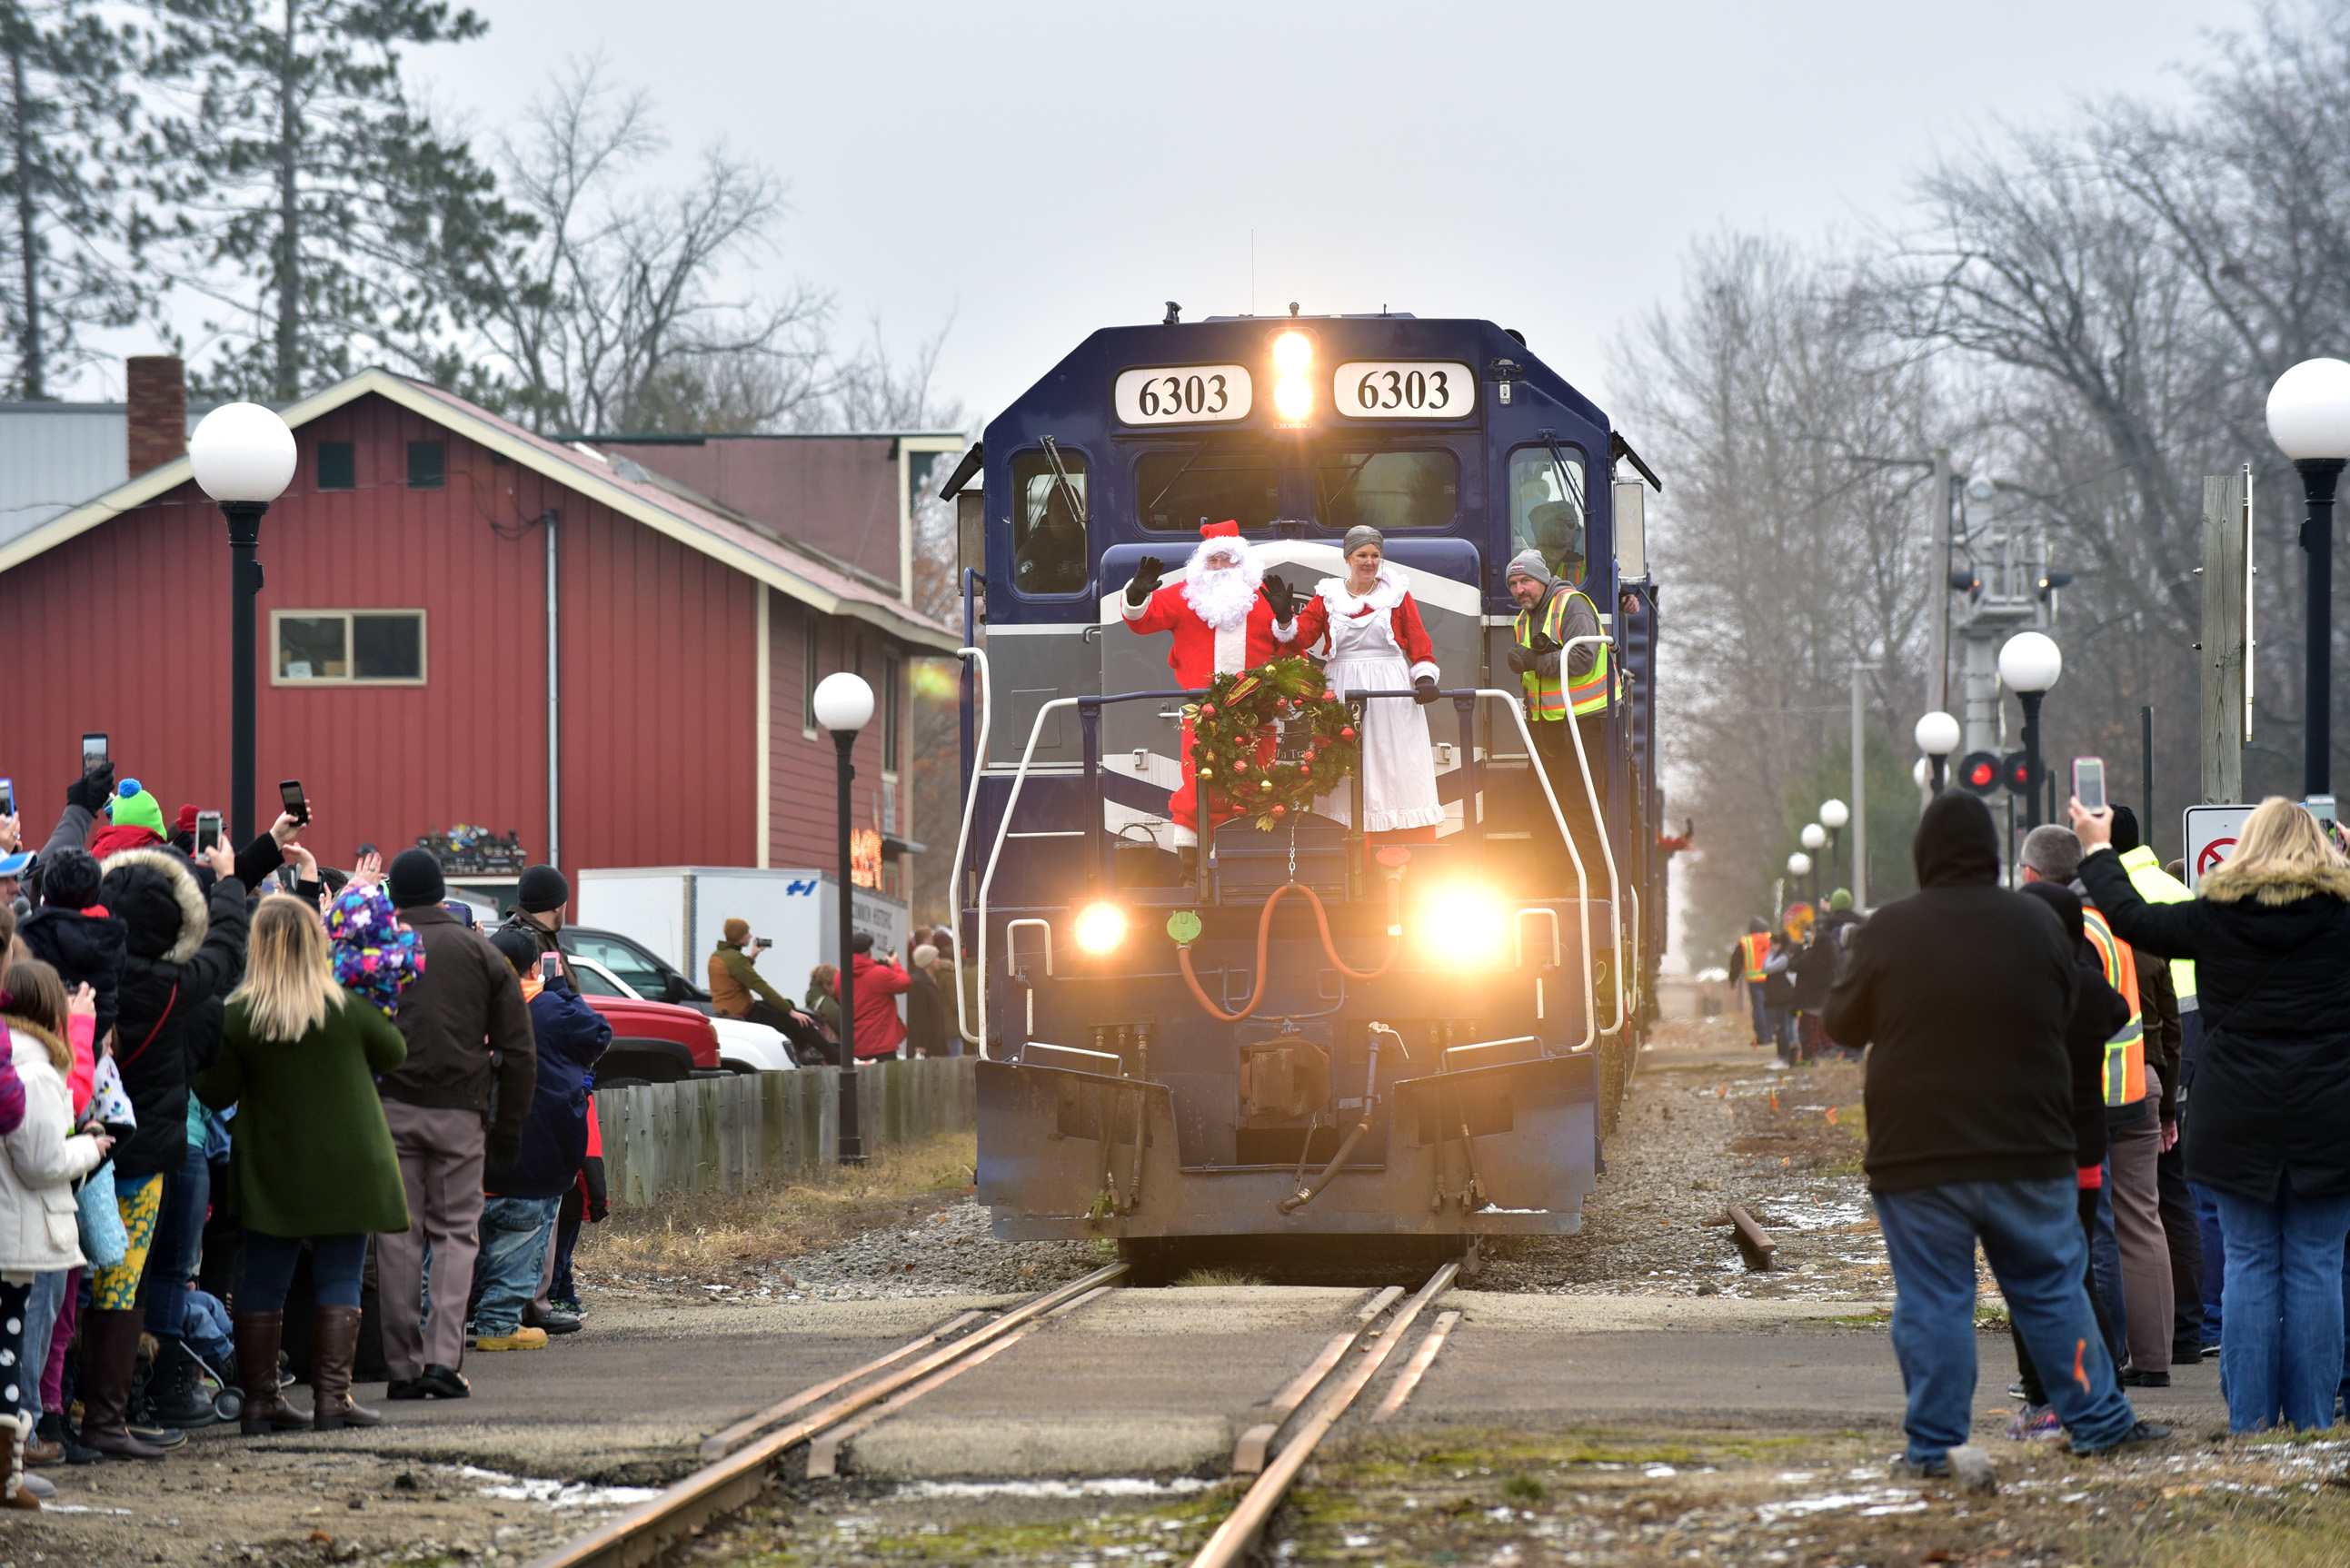 Roscommon Christmas In The Village 2020 WELCOME TO CHRISTMAS IN THE VILLAGE | Houghton Lake Resorter